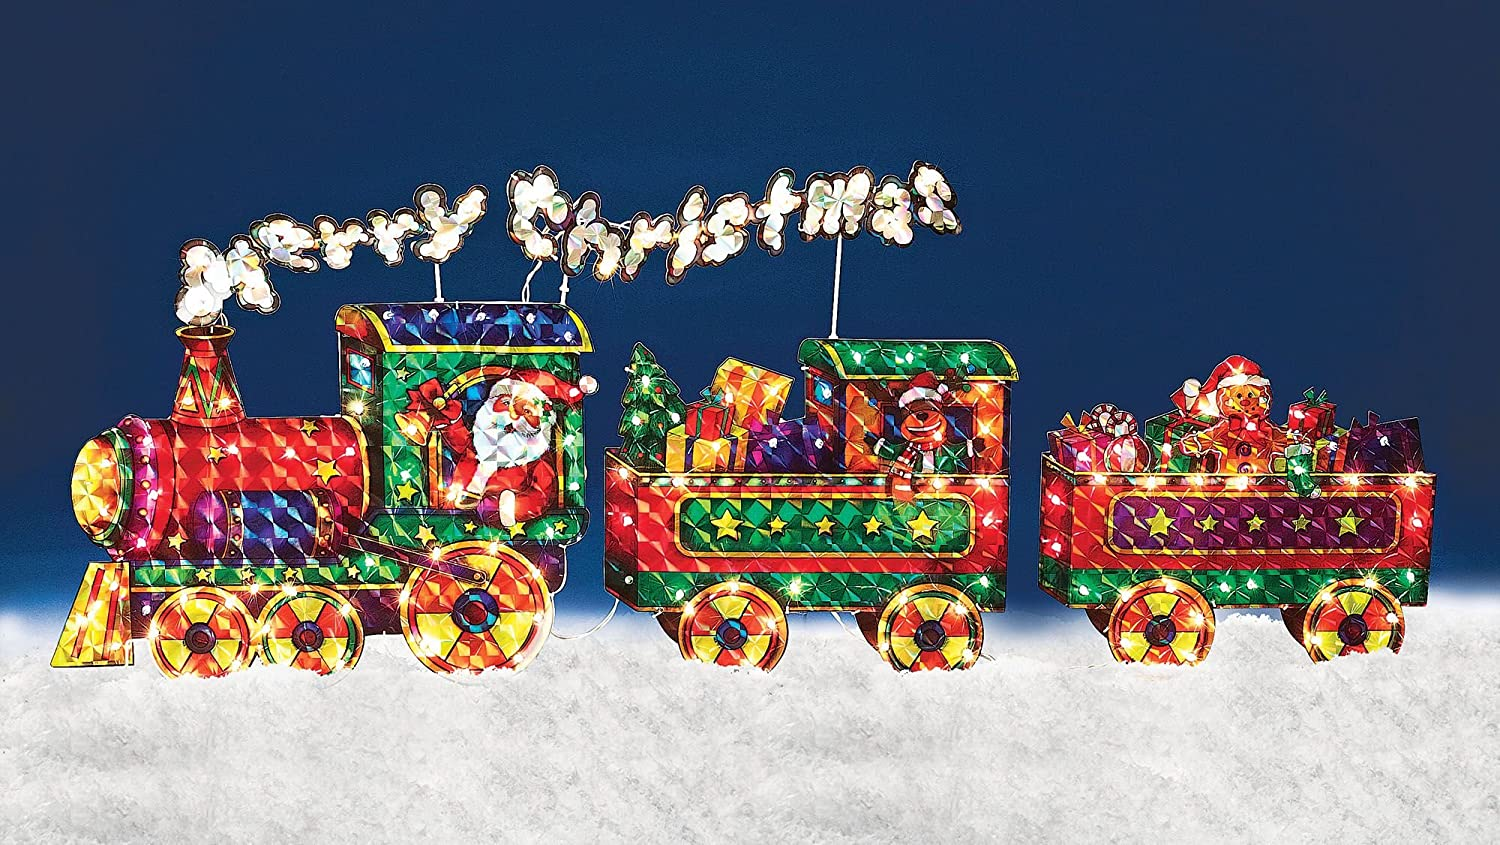 Merry Christmas Train Yard Art Outdoor Holiday Decoration | Christmas ...